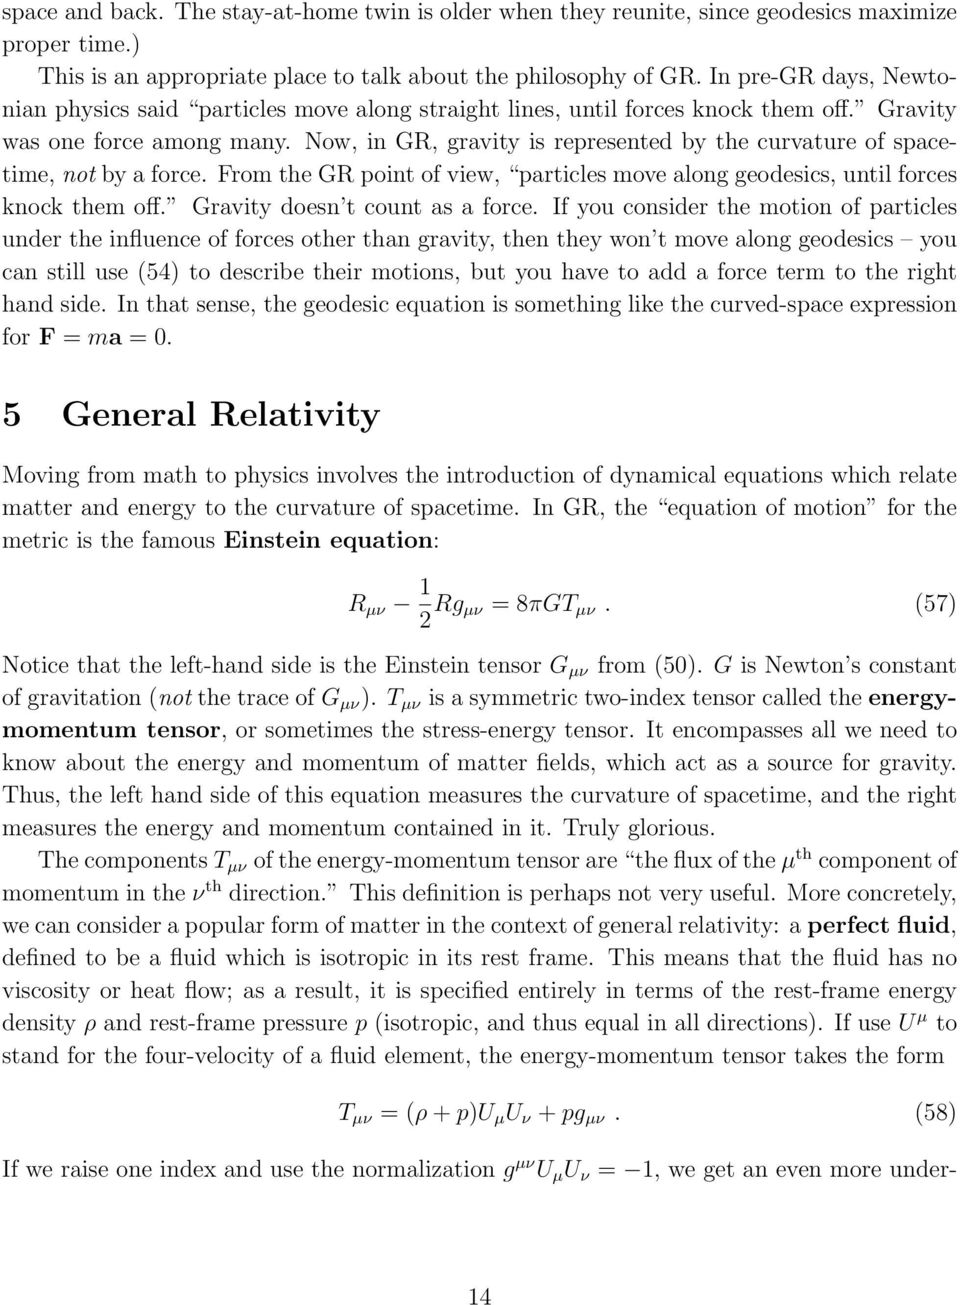 Now, in GR, gravity is represented by the curvature of spacetime, not by a force. From the GR point of view, particles move along geodesics, until forces knock them off.